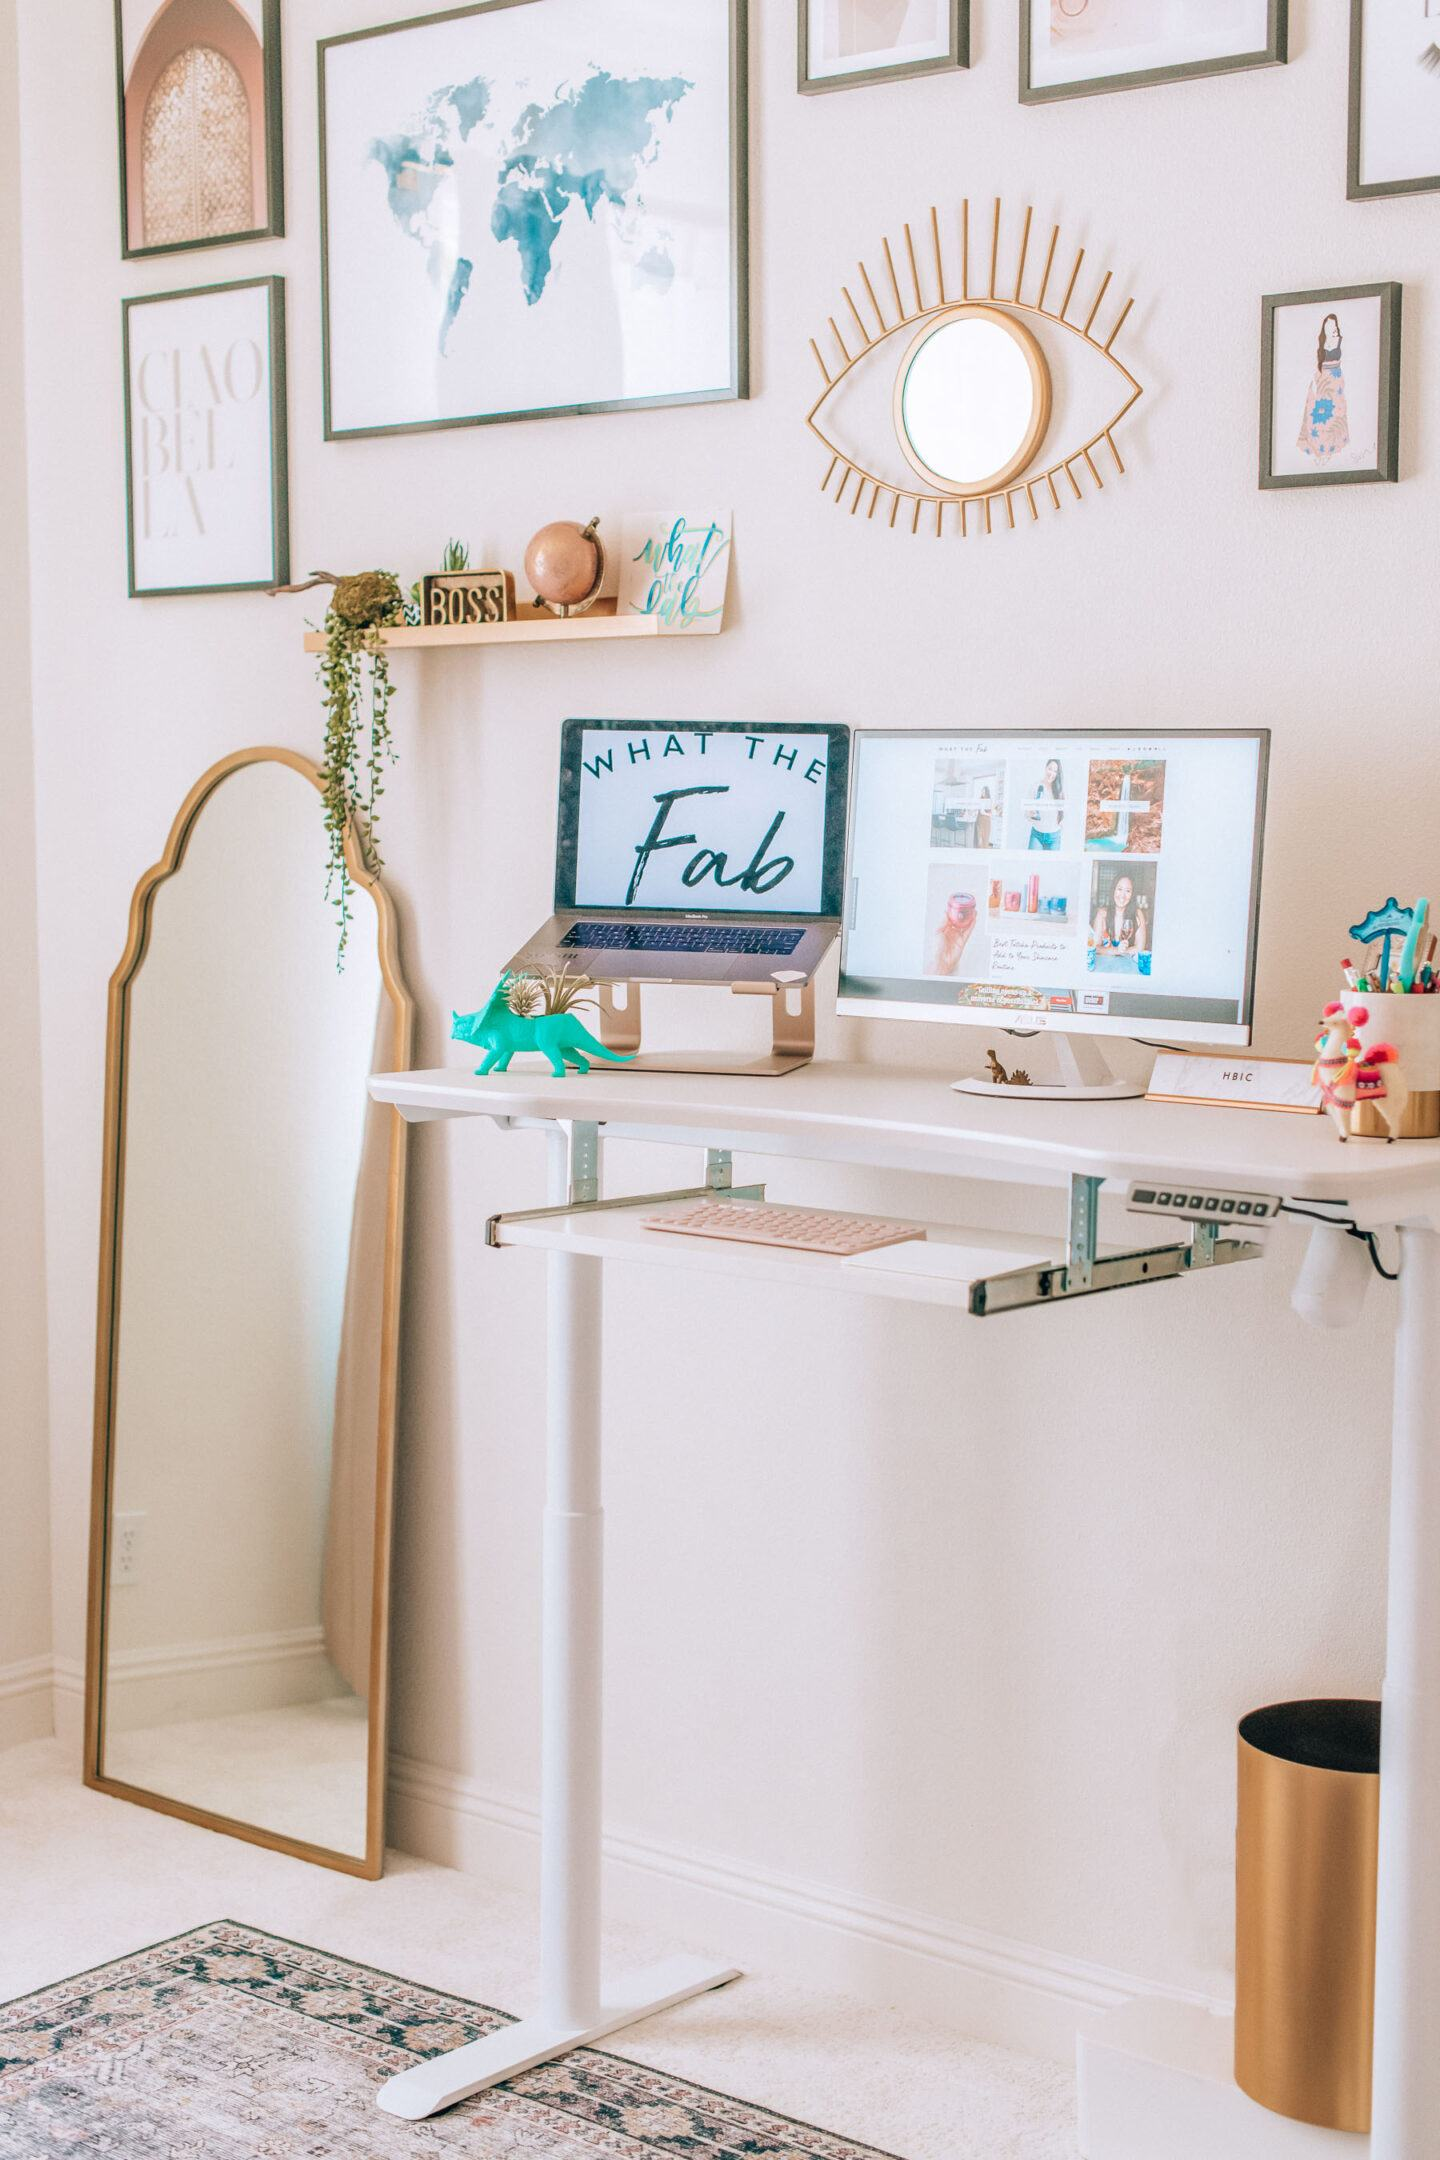 Blogger office, by lifestyle blogger What The Fab